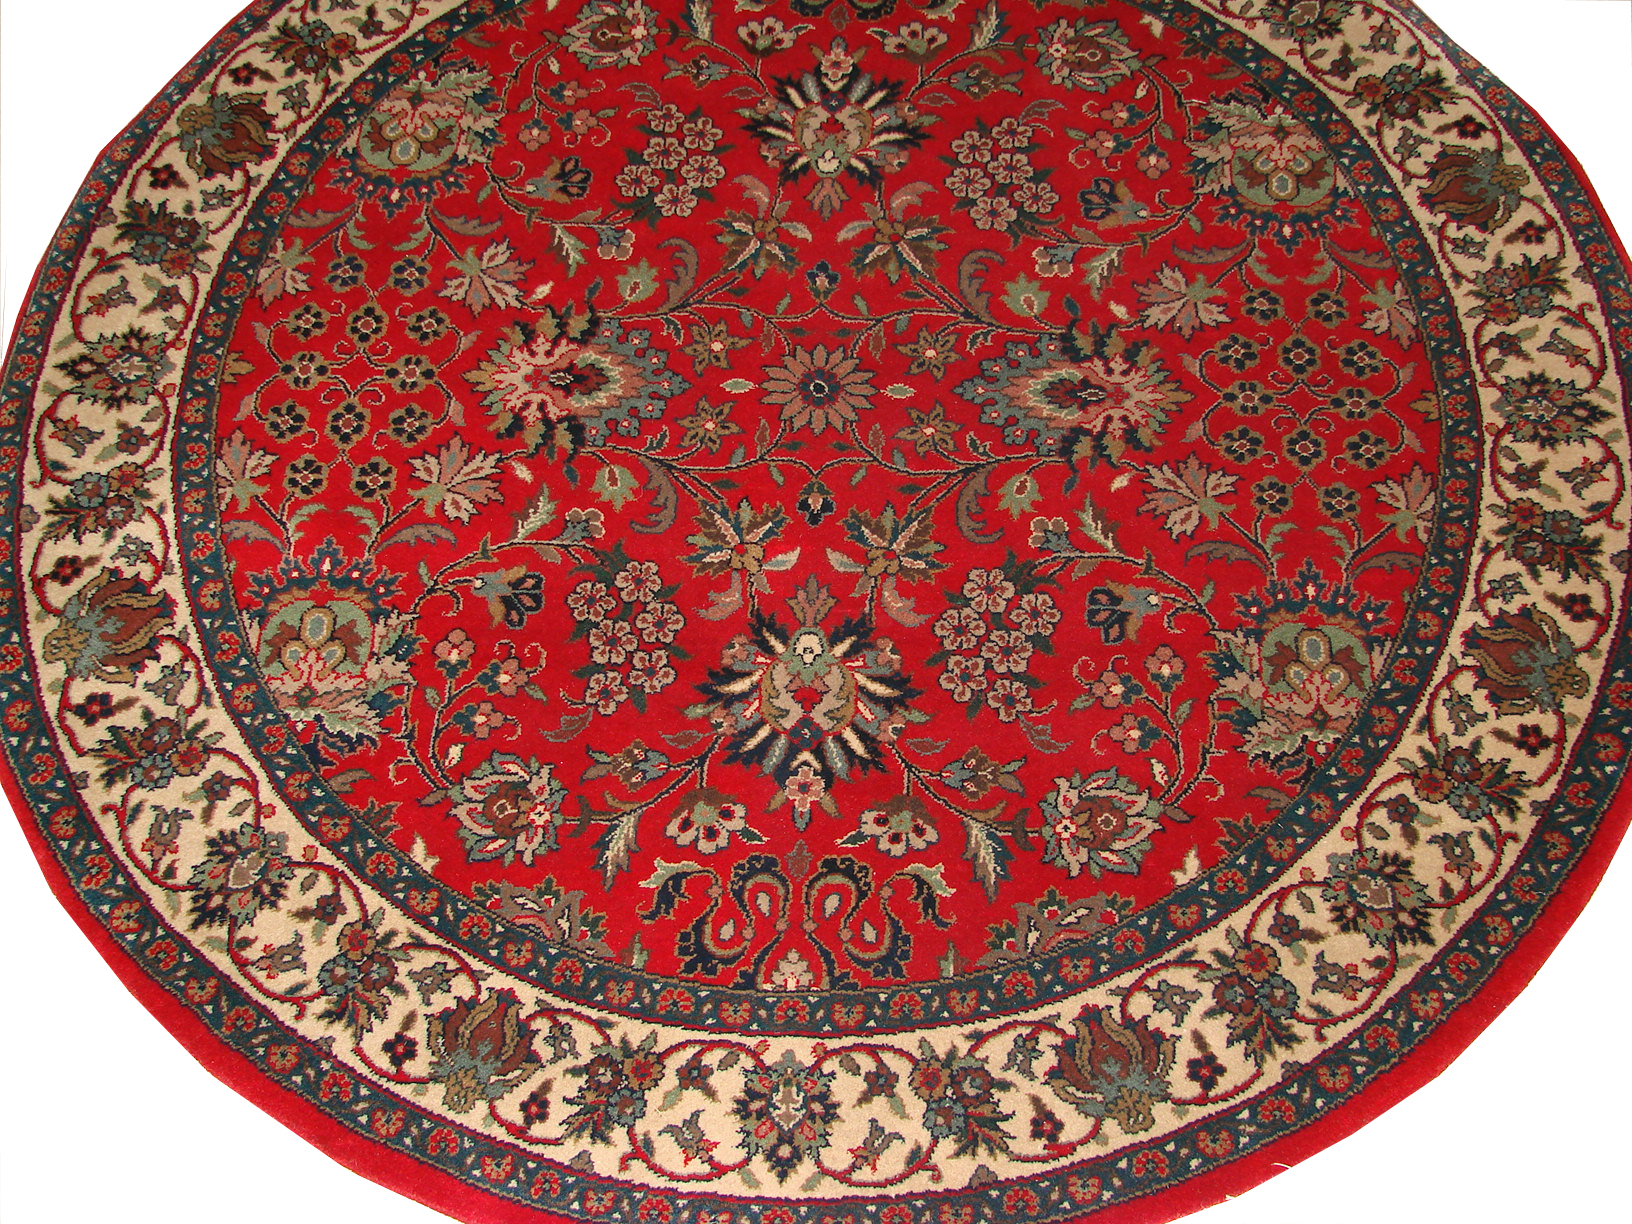 5 Round & Square Traditional Hand Knotted Wool Area Rug - MR4072